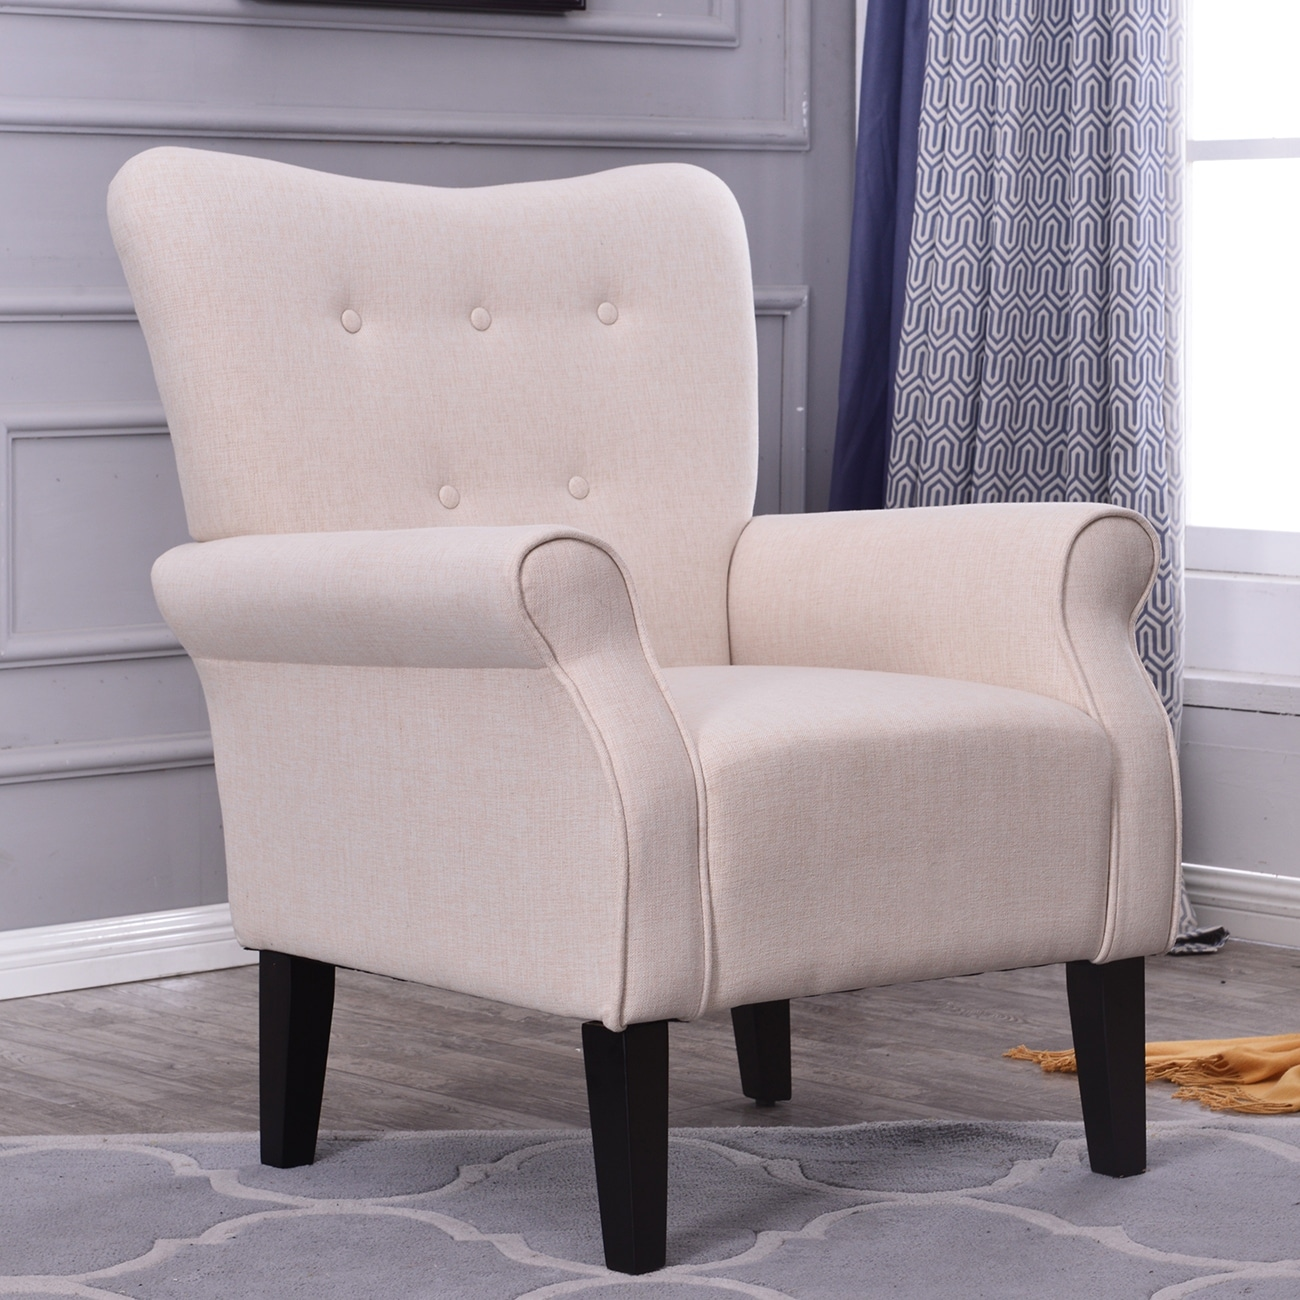 Shop belleze modern wingback accent chair armrest linen with high backrest beige free shipping today overstock com 17833255